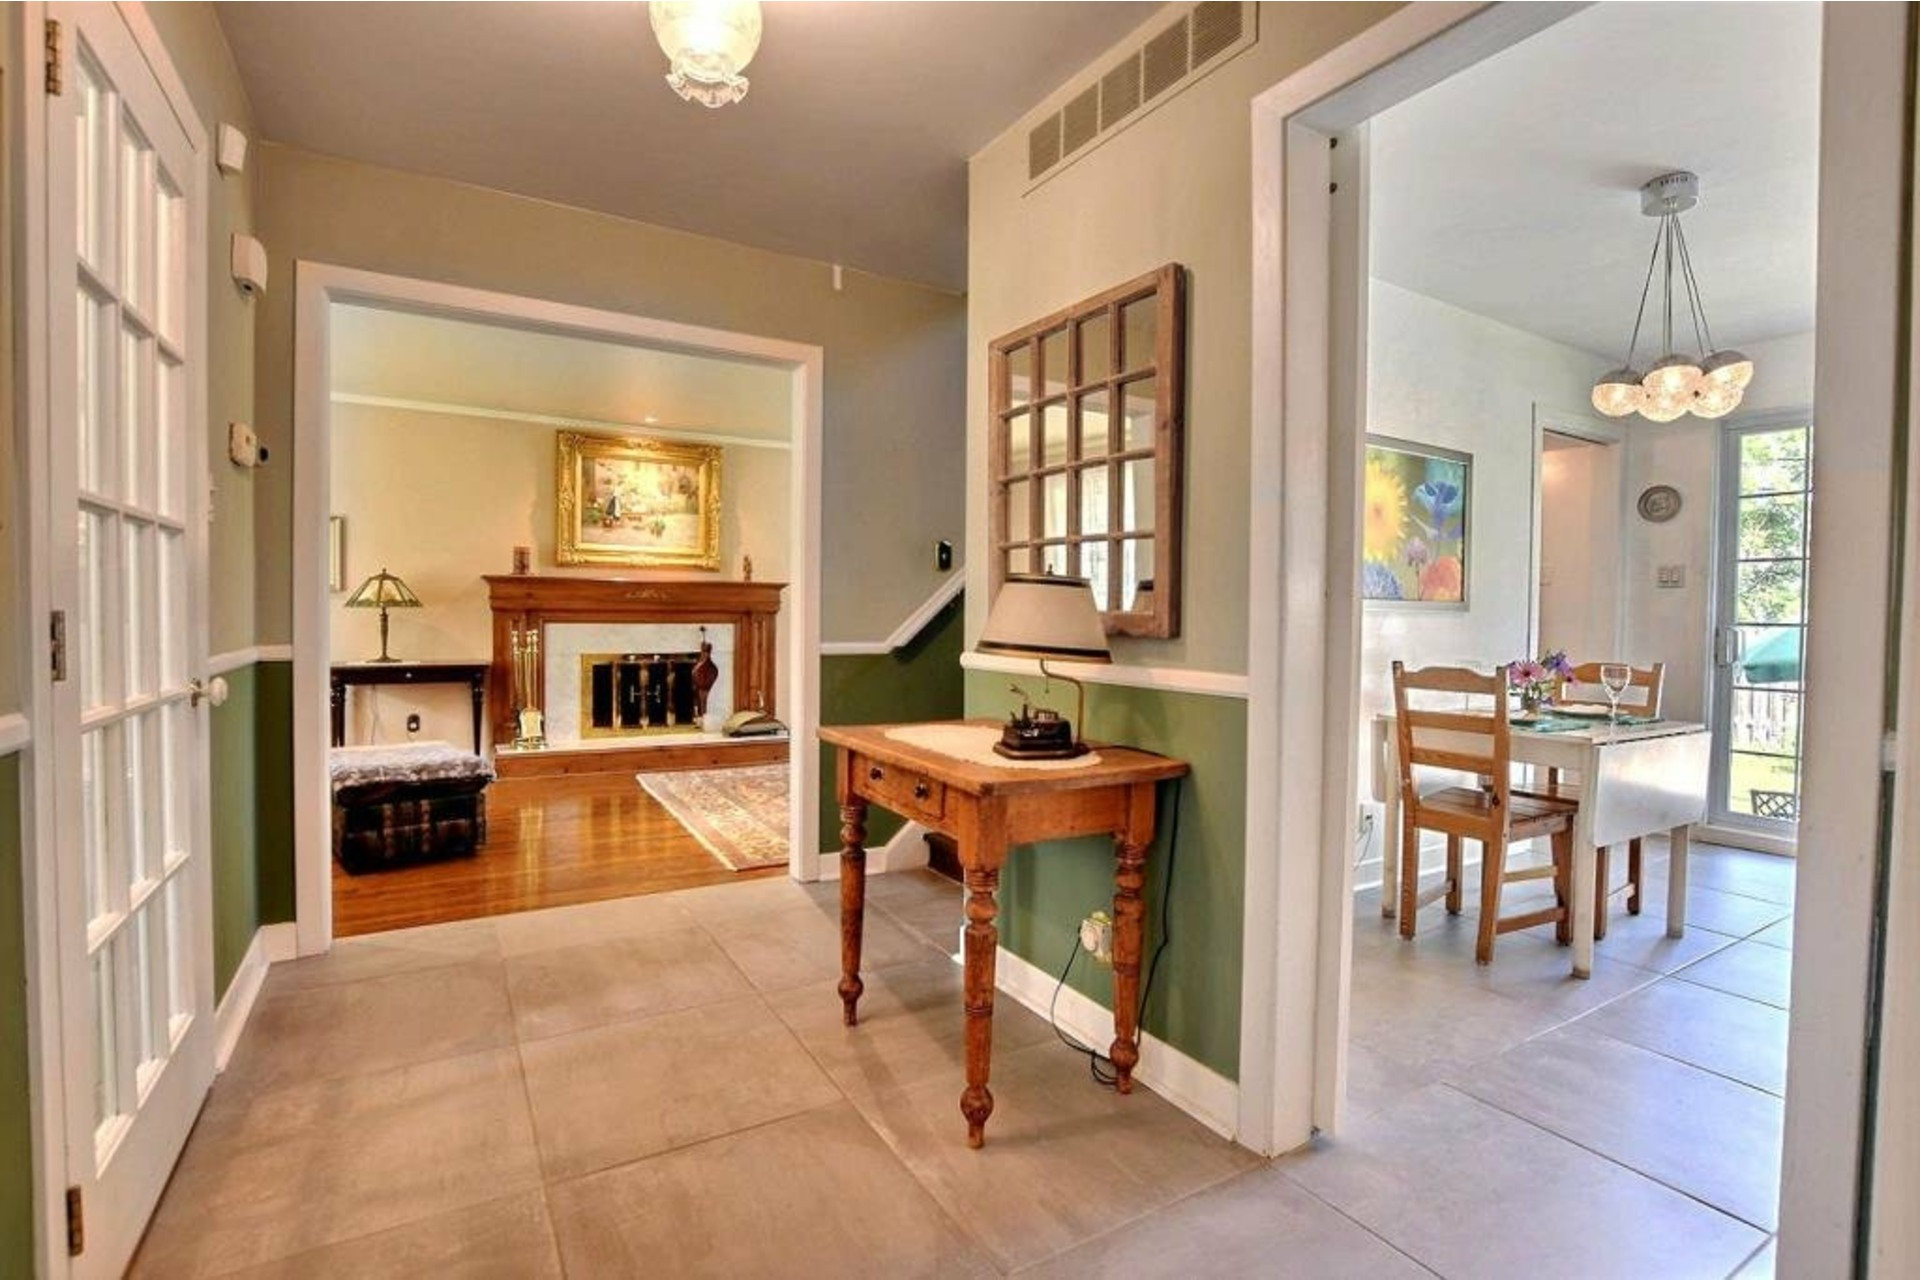 image 2 - House For rent Beaconsfield - 11 rooms